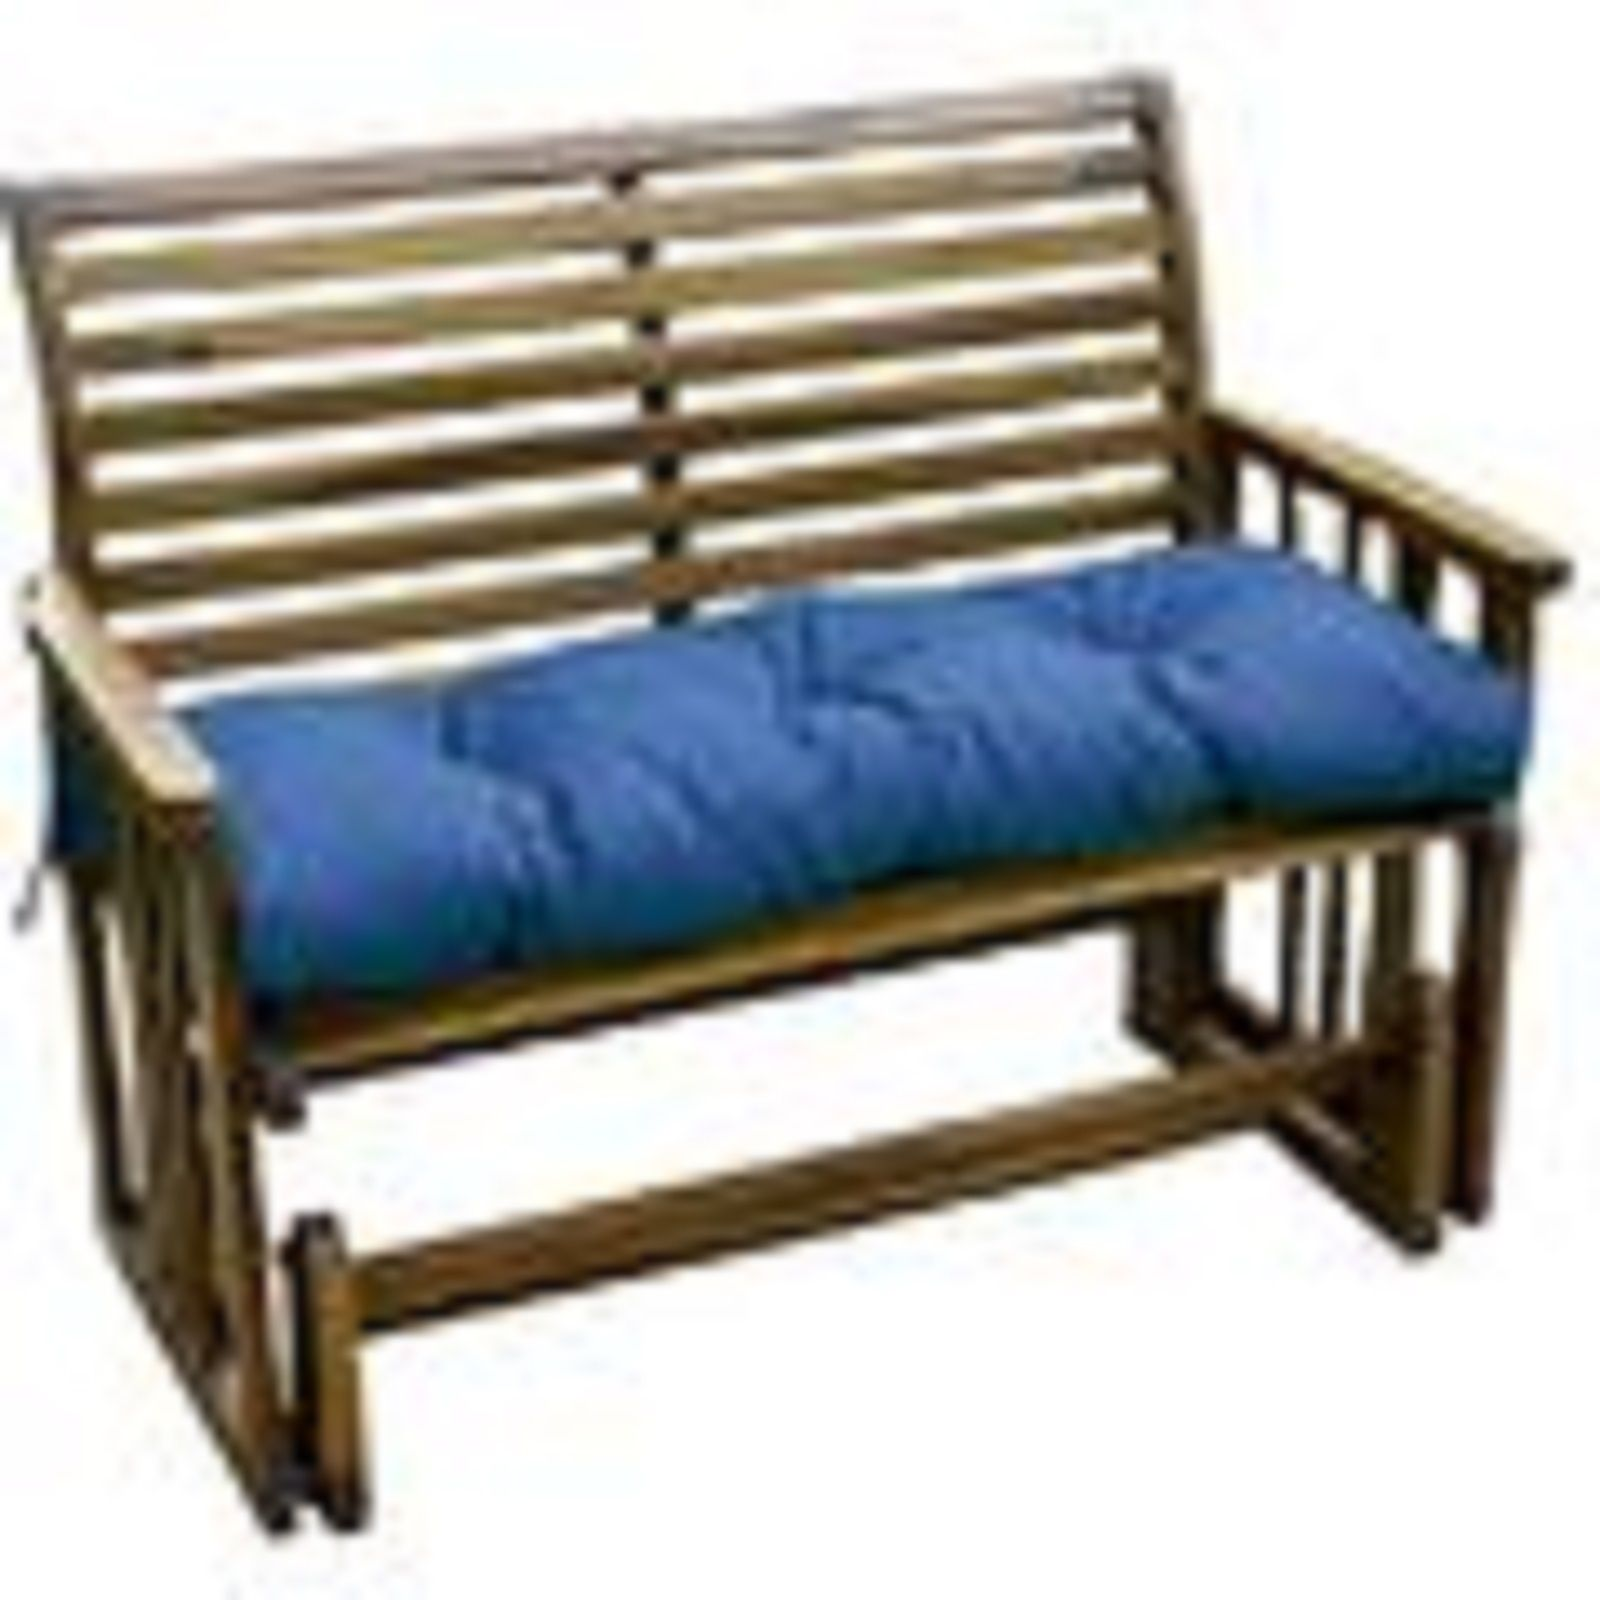 $36 from kmart Outdoor Swing Bench cushion Bench cushion measures